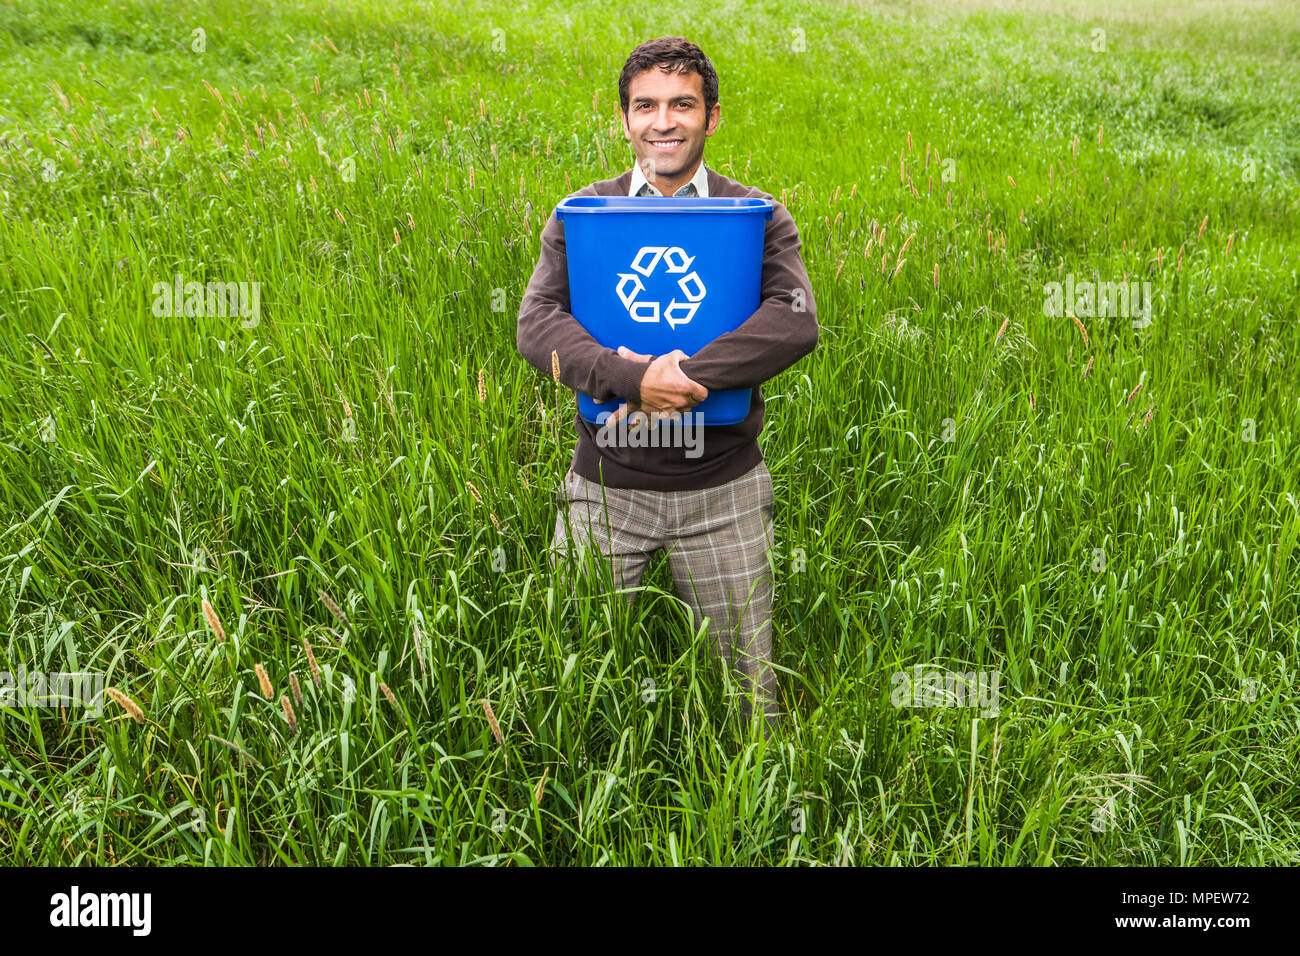 A man standing in a field of green grass and trees holding a recycle bin. A positive conceptual shot of recycling. - Stock Image